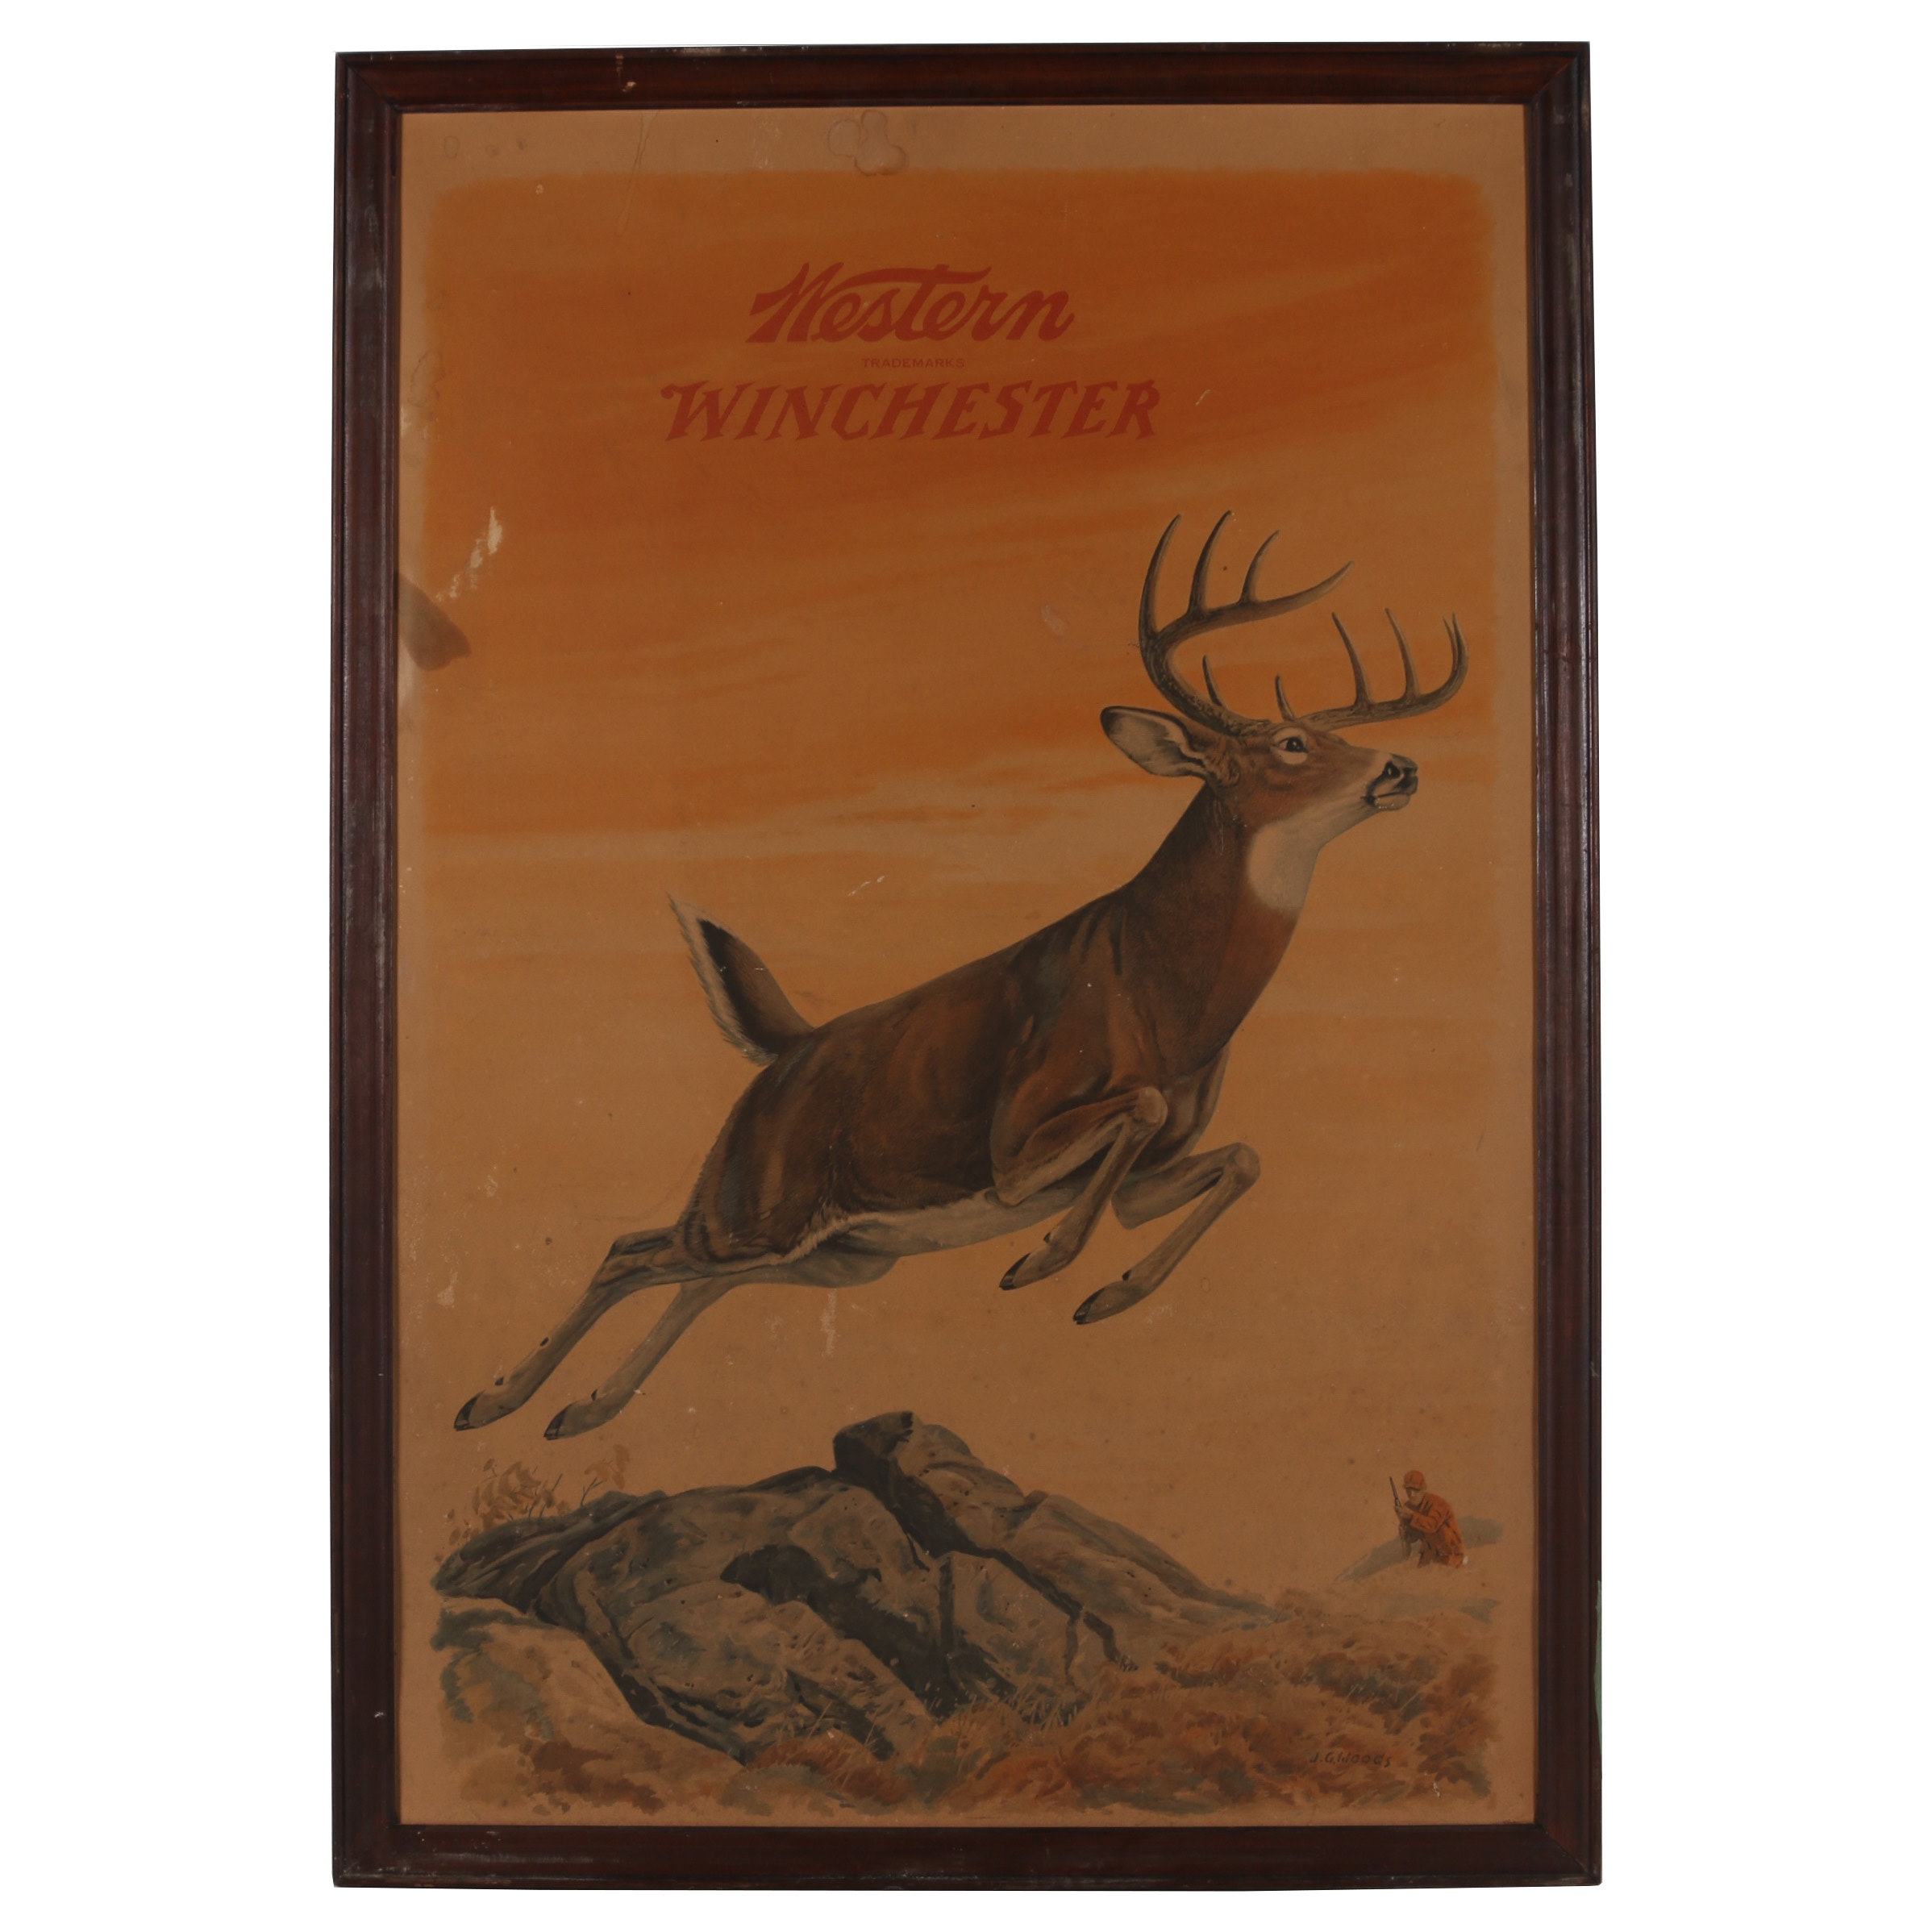 """Offset Lithograph after J. G. Woods """"Western Winchester"""""""